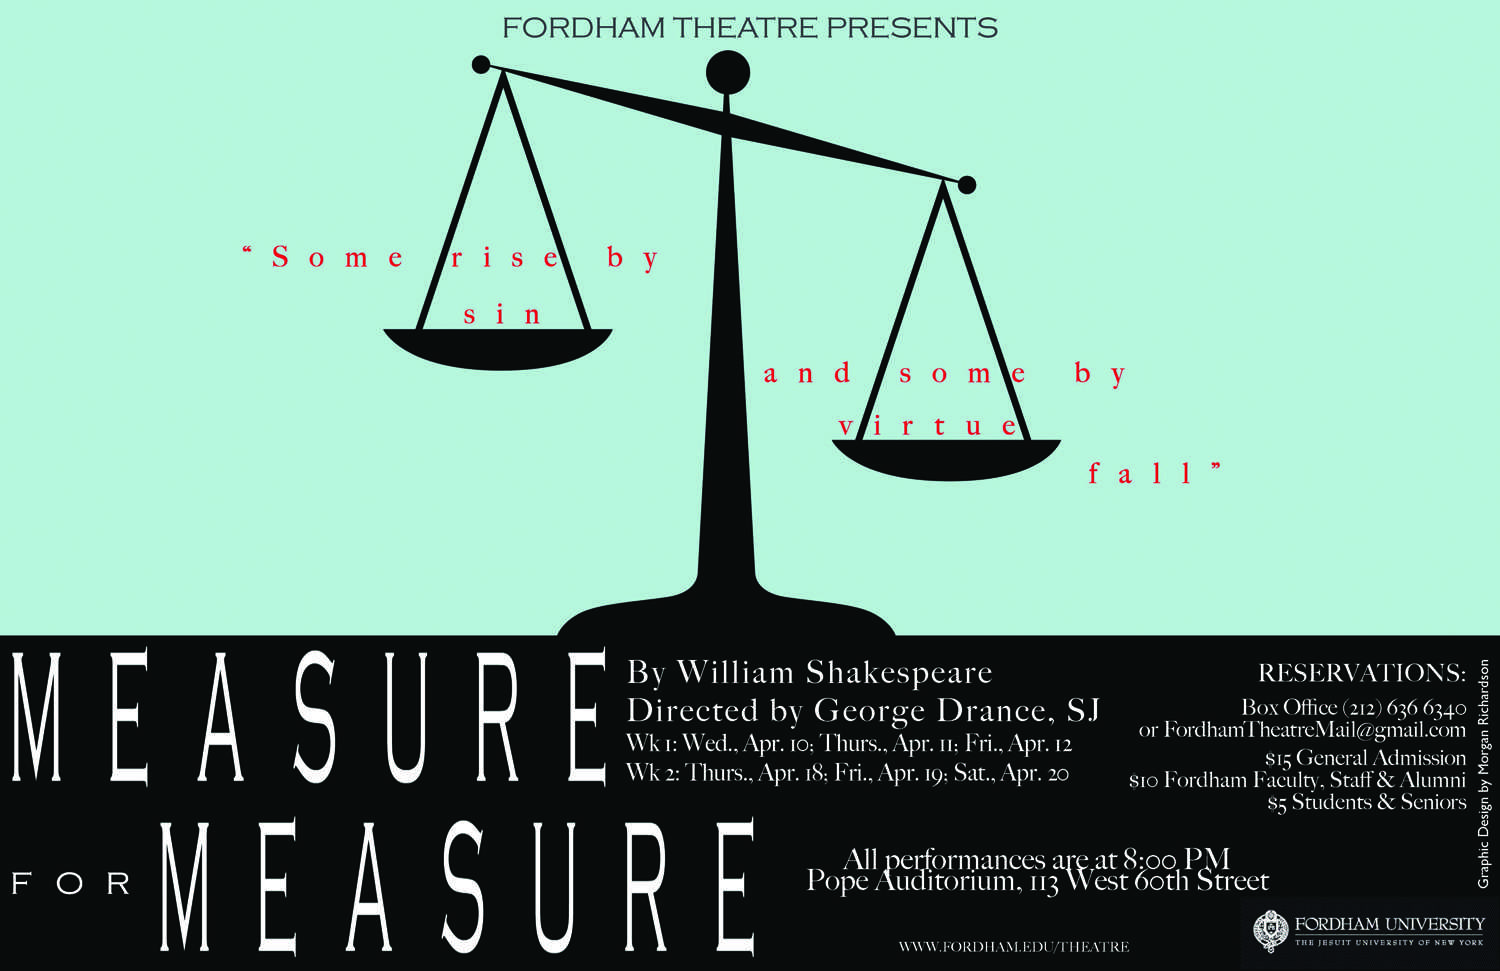 """The promotional poster for """"Measure for Measure,"""" a Shakespeare play and the latest mainstageproduction by the Fordham theater department. (Courtesy of Morgan Richardson)"""